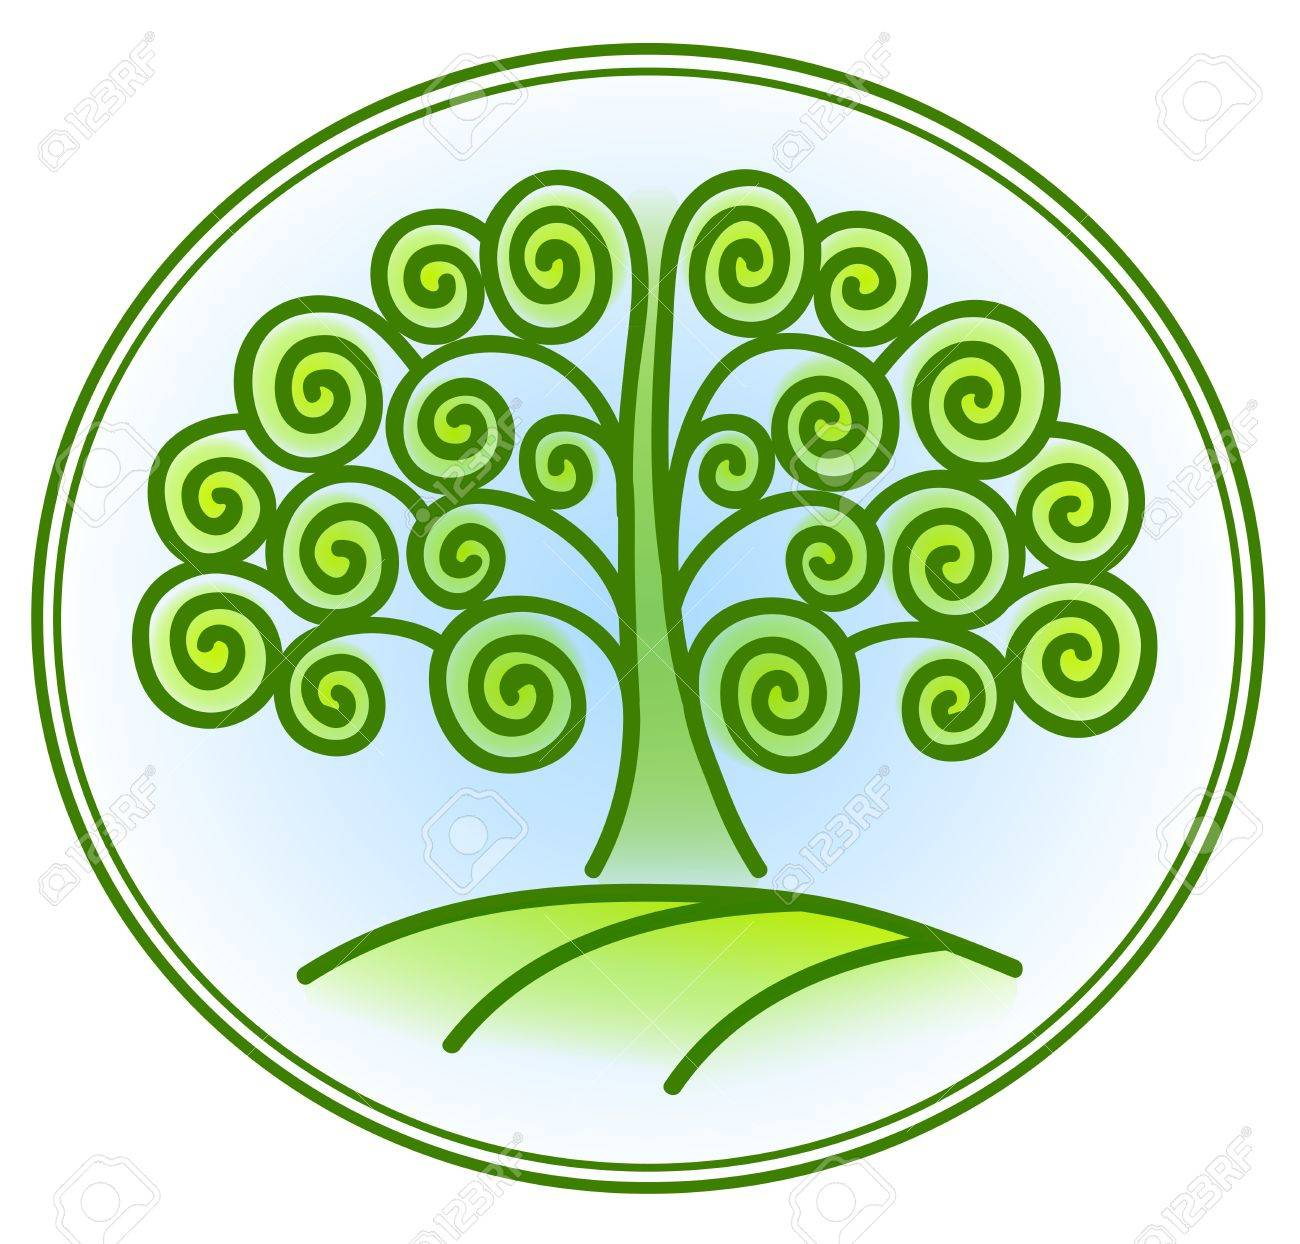 nature and environment icon with tree Stock Vector - 18826516